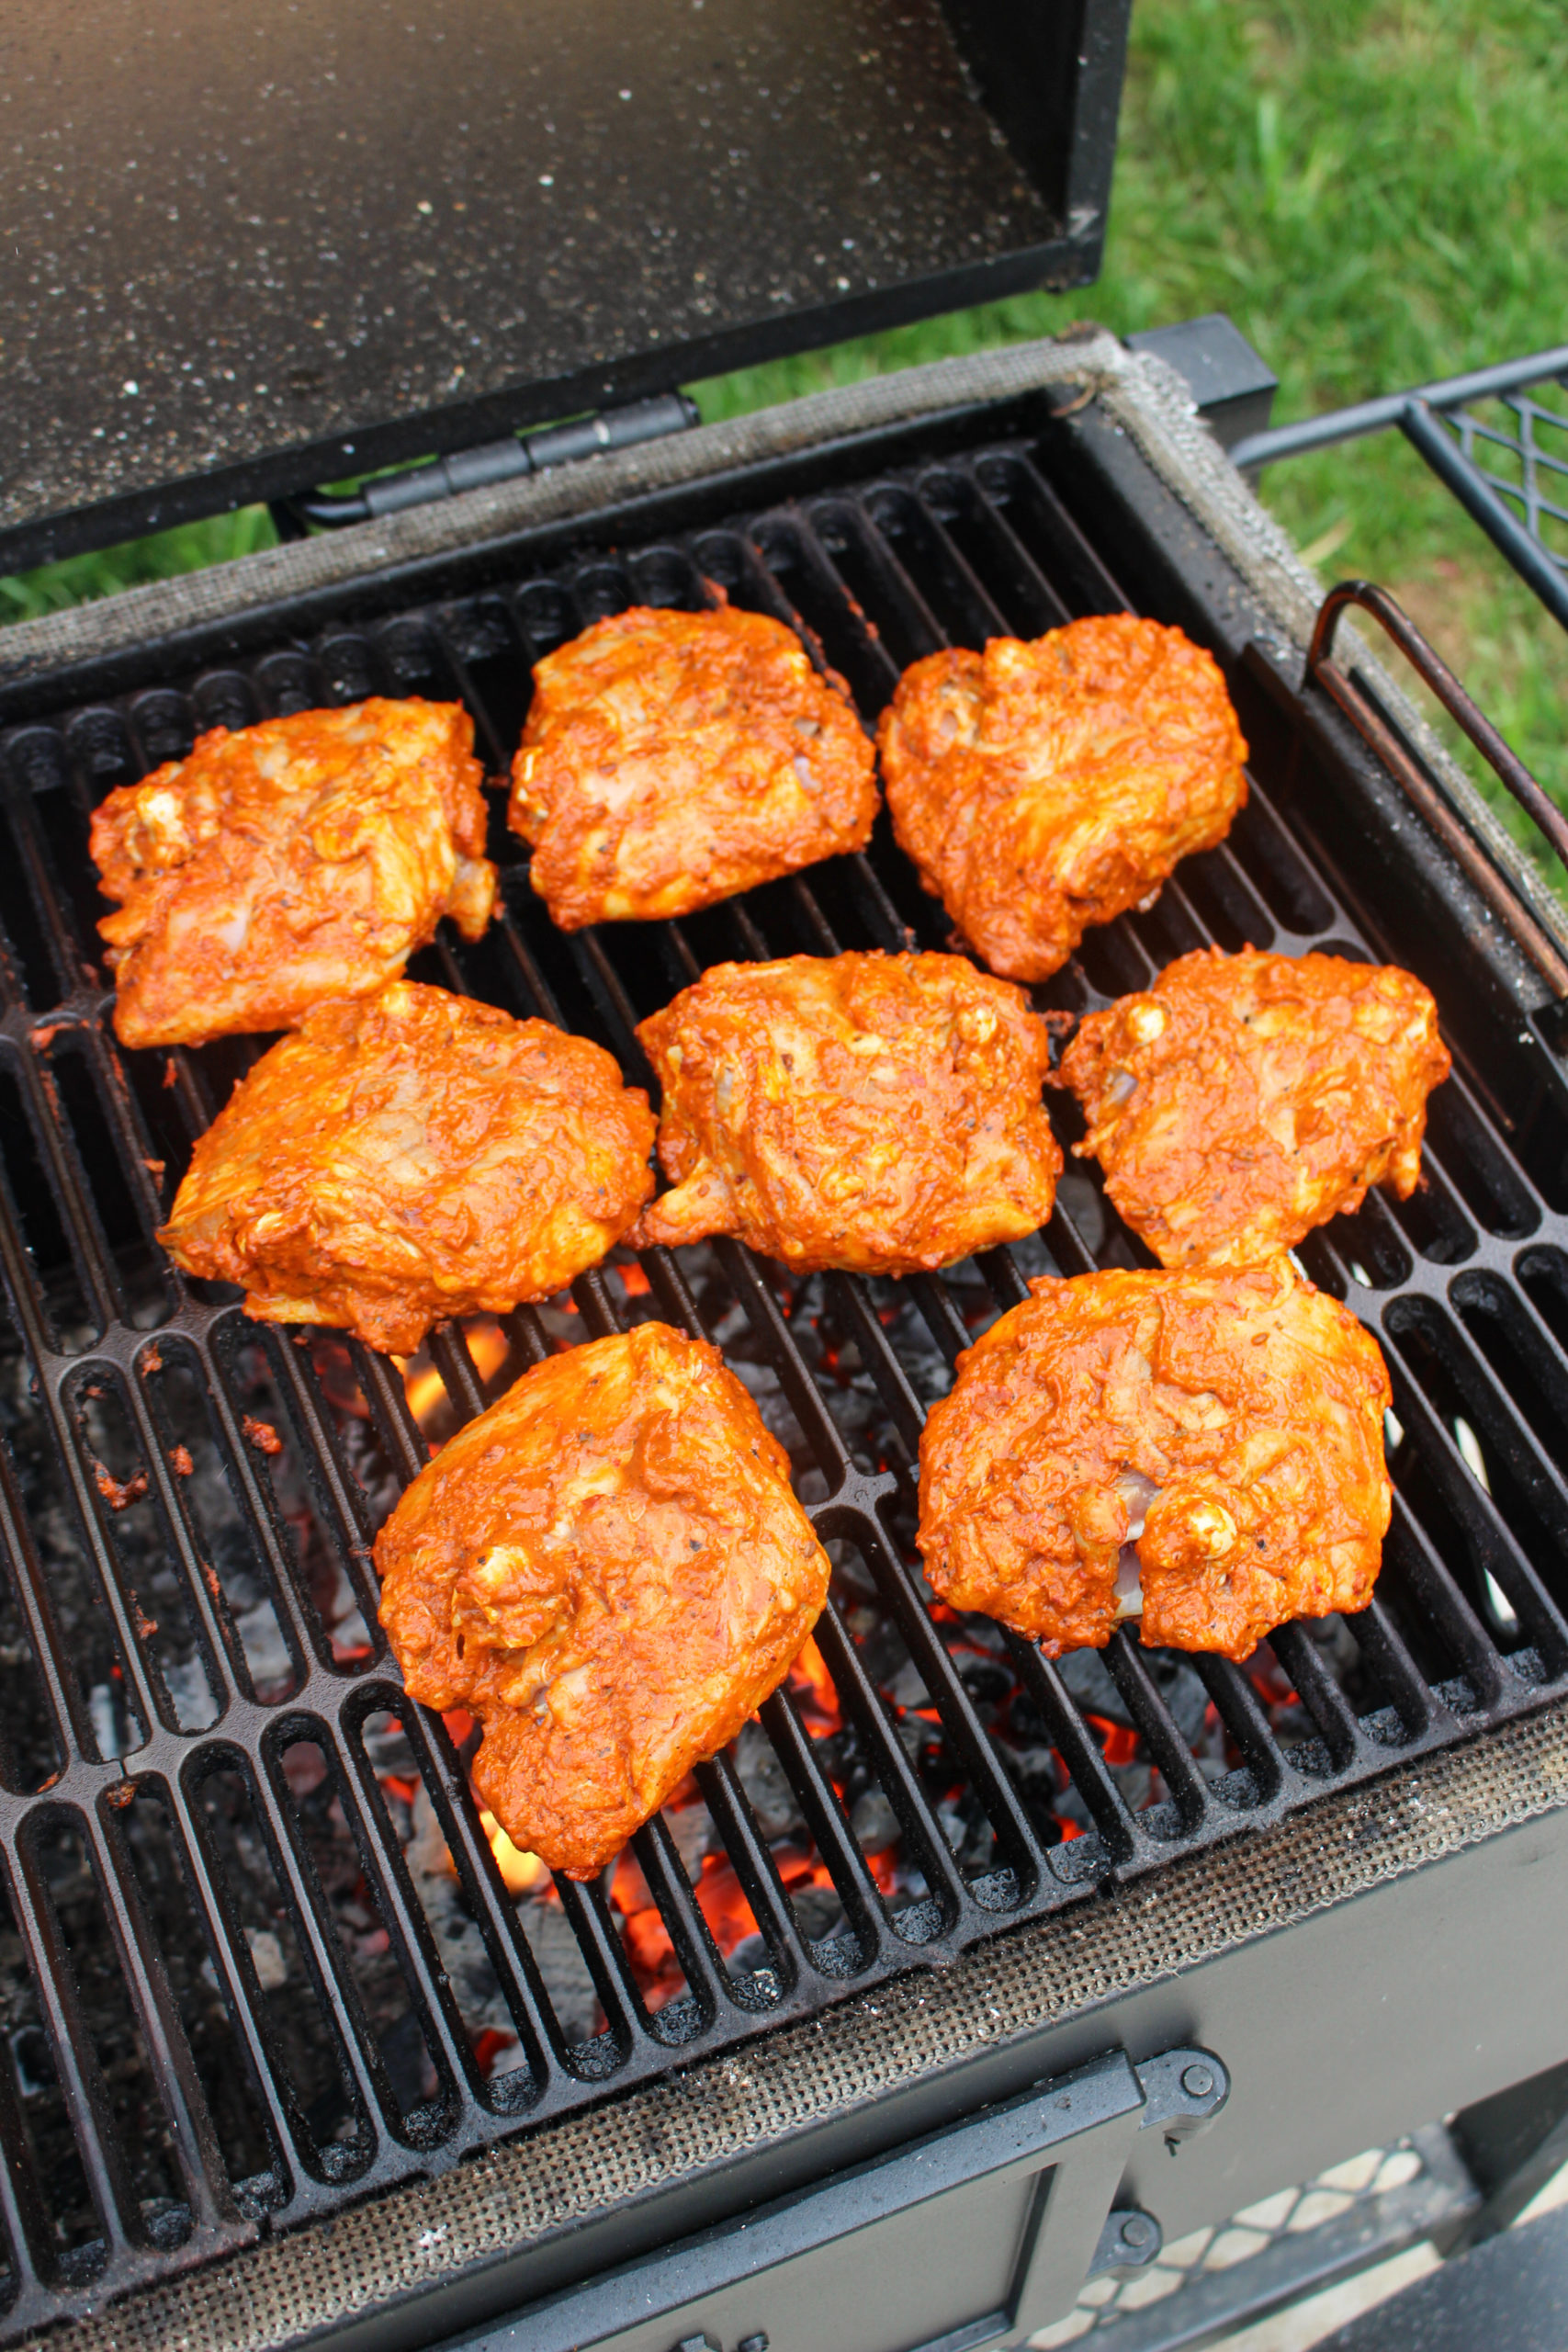 Grilled Hot Chili Chicken Thighs